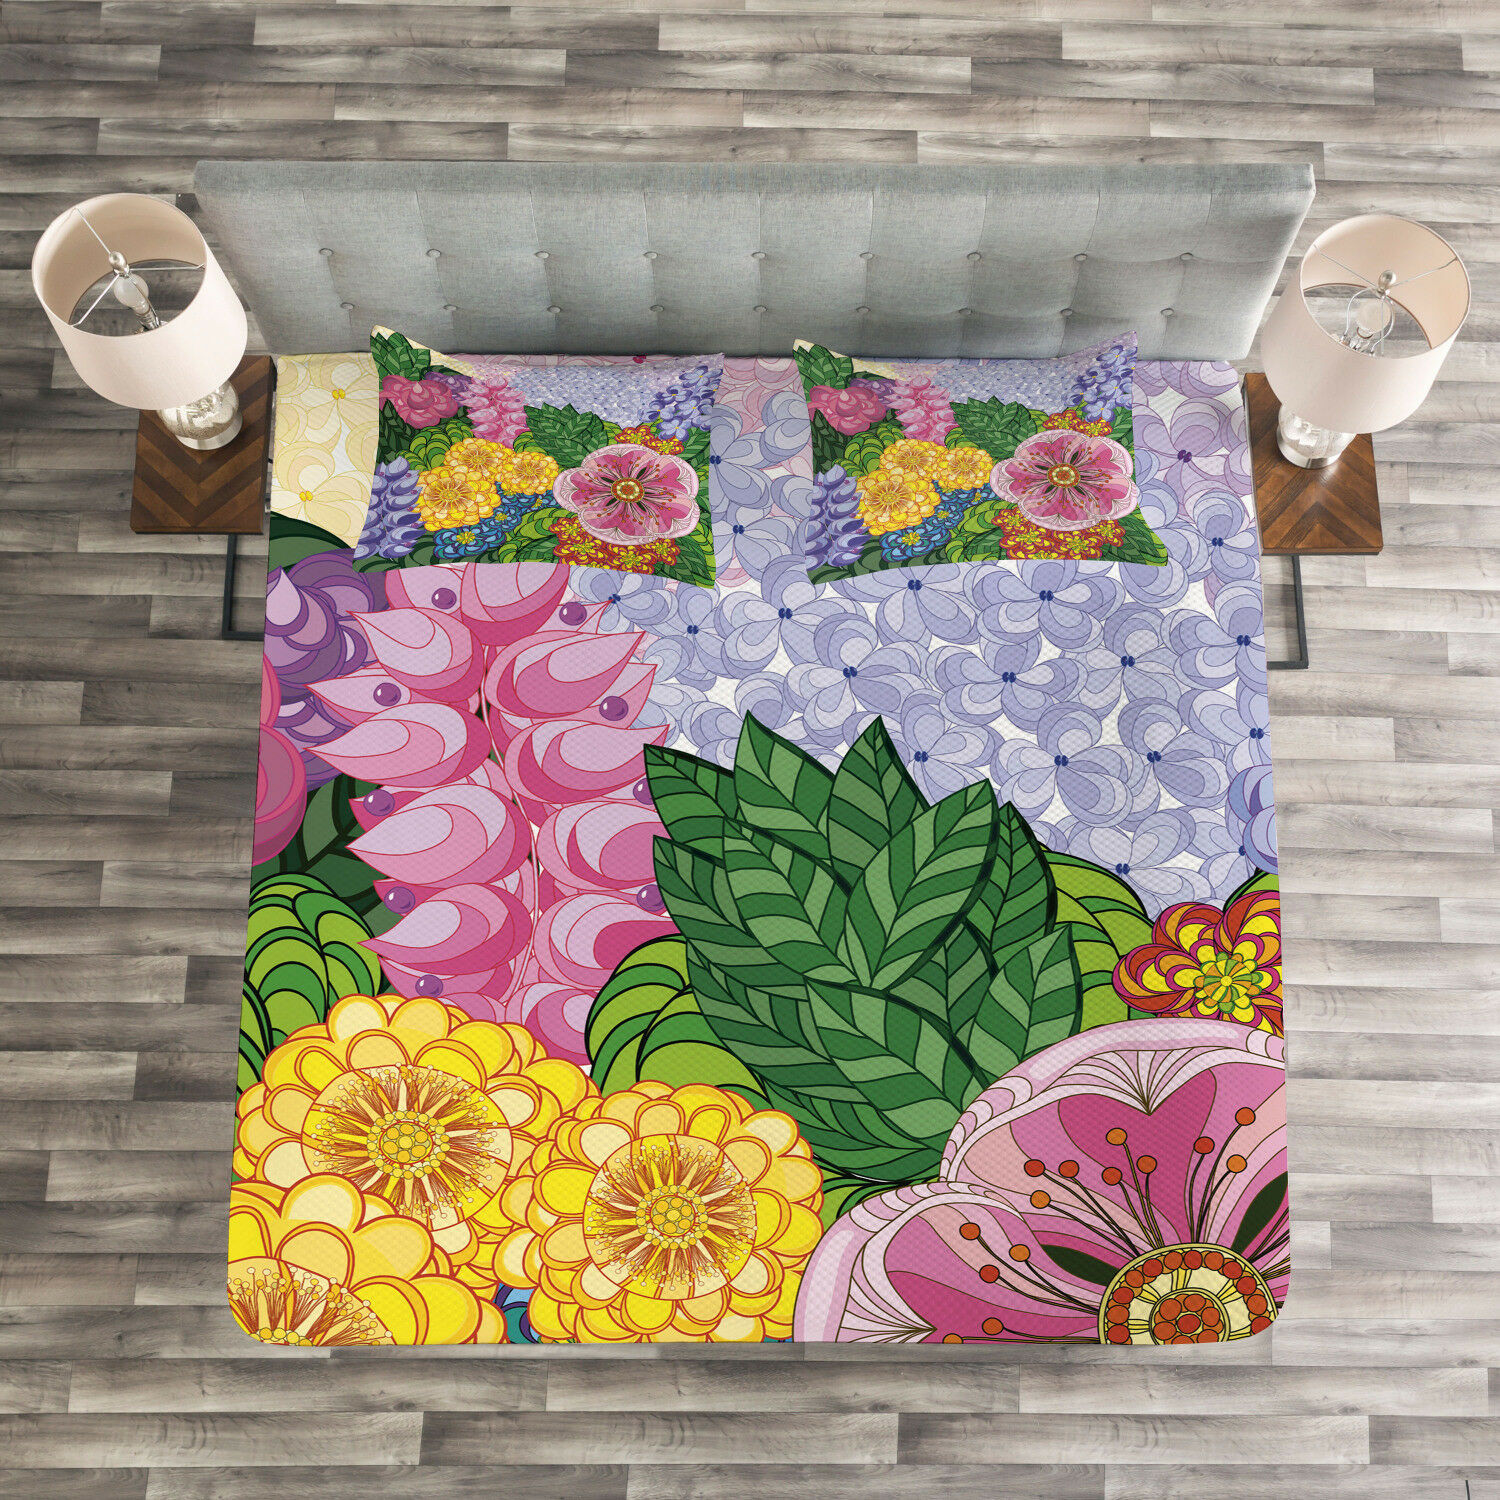 Vintage Quilted Bedspread & Pillow Shams Set, Nature Flowers Buds Print